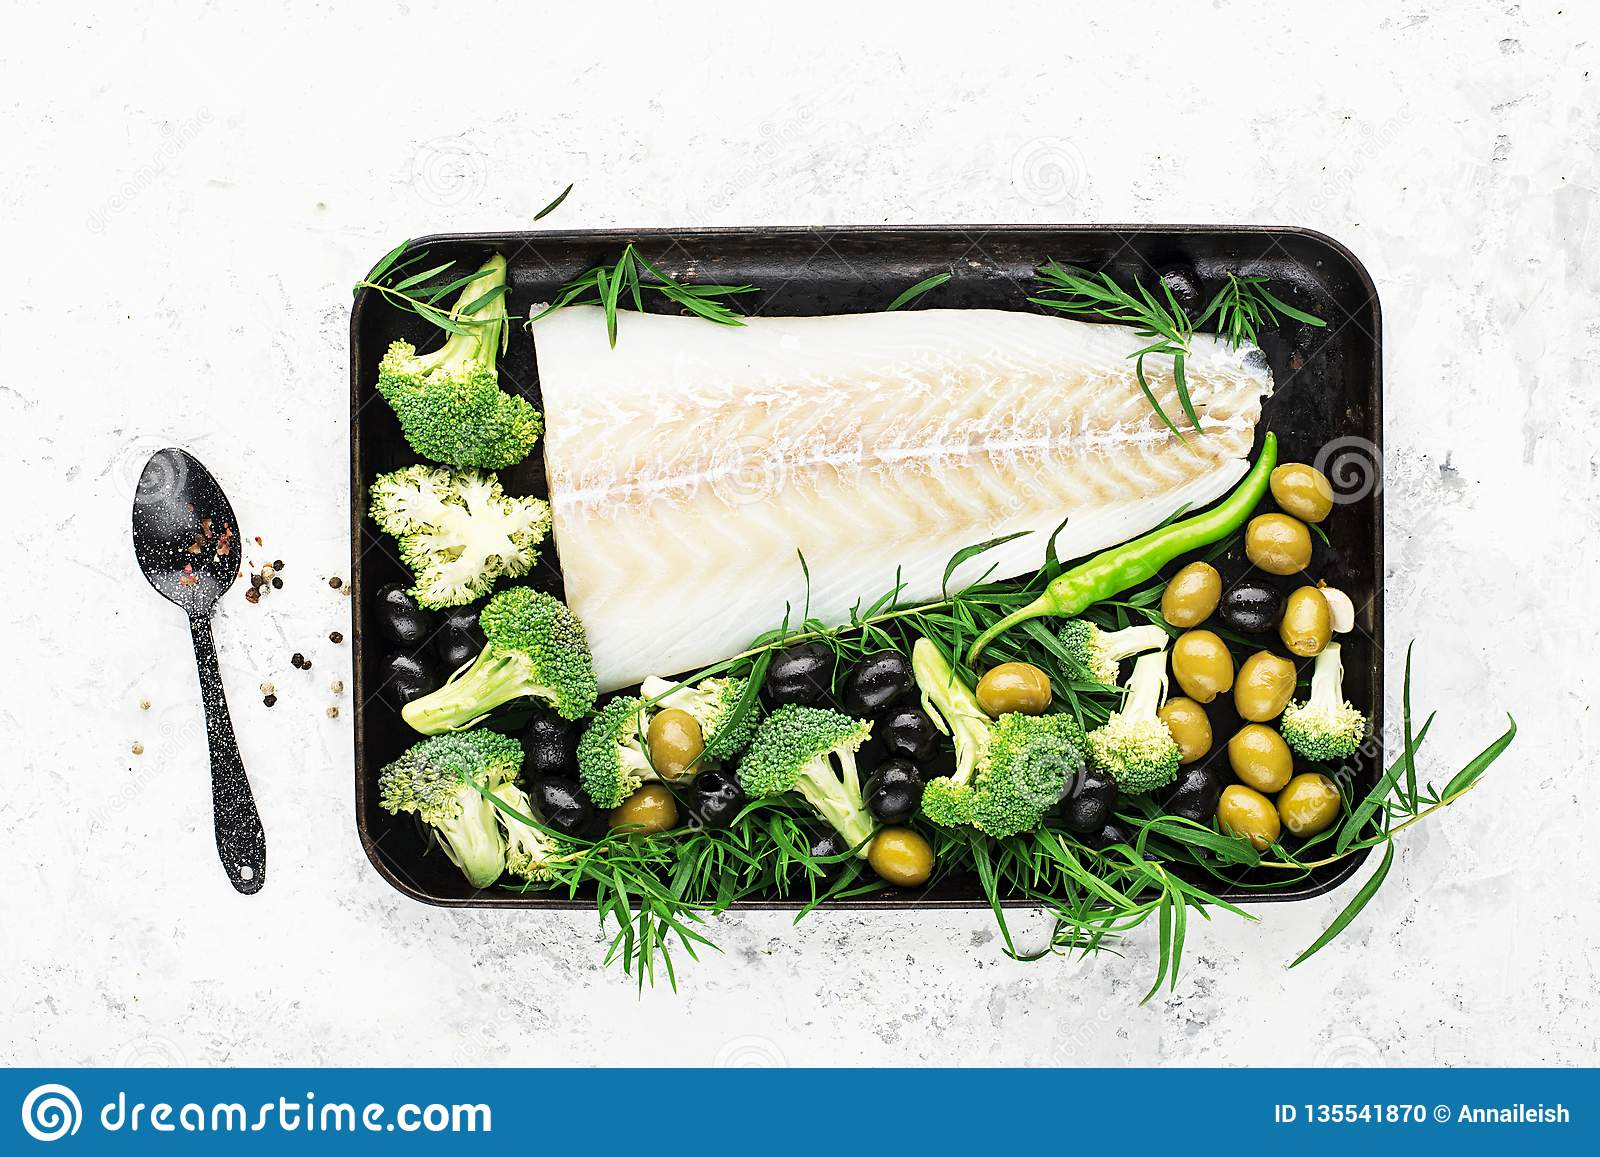 Healthy food: wild organic fresh sea white cod fish with broccoli, tarragon, onions, olives on a baking sheet. The